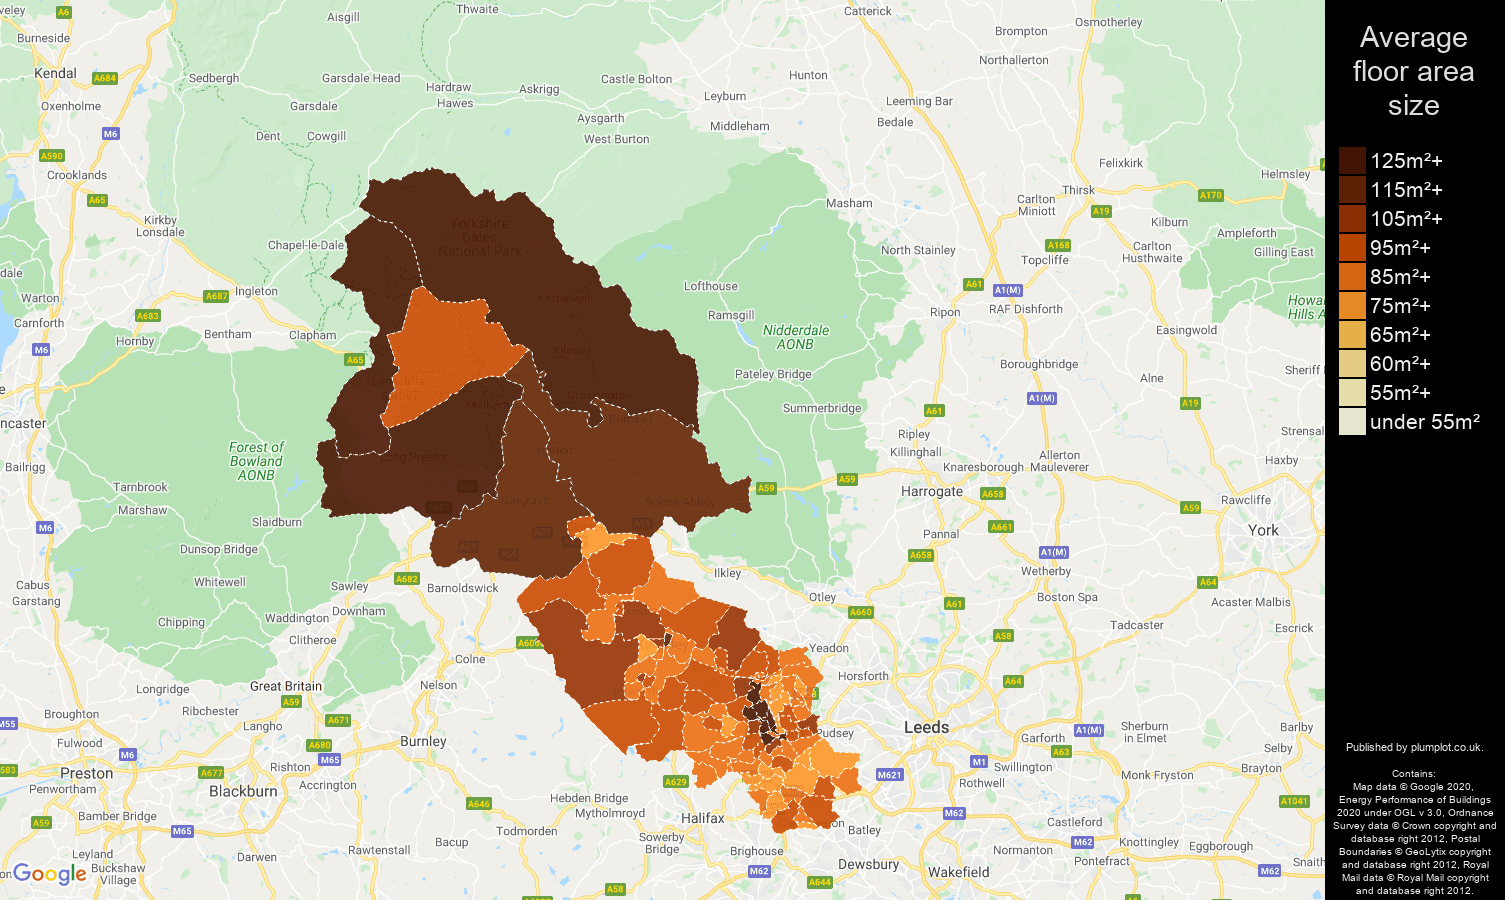 Bradford map of average floor area size of houses